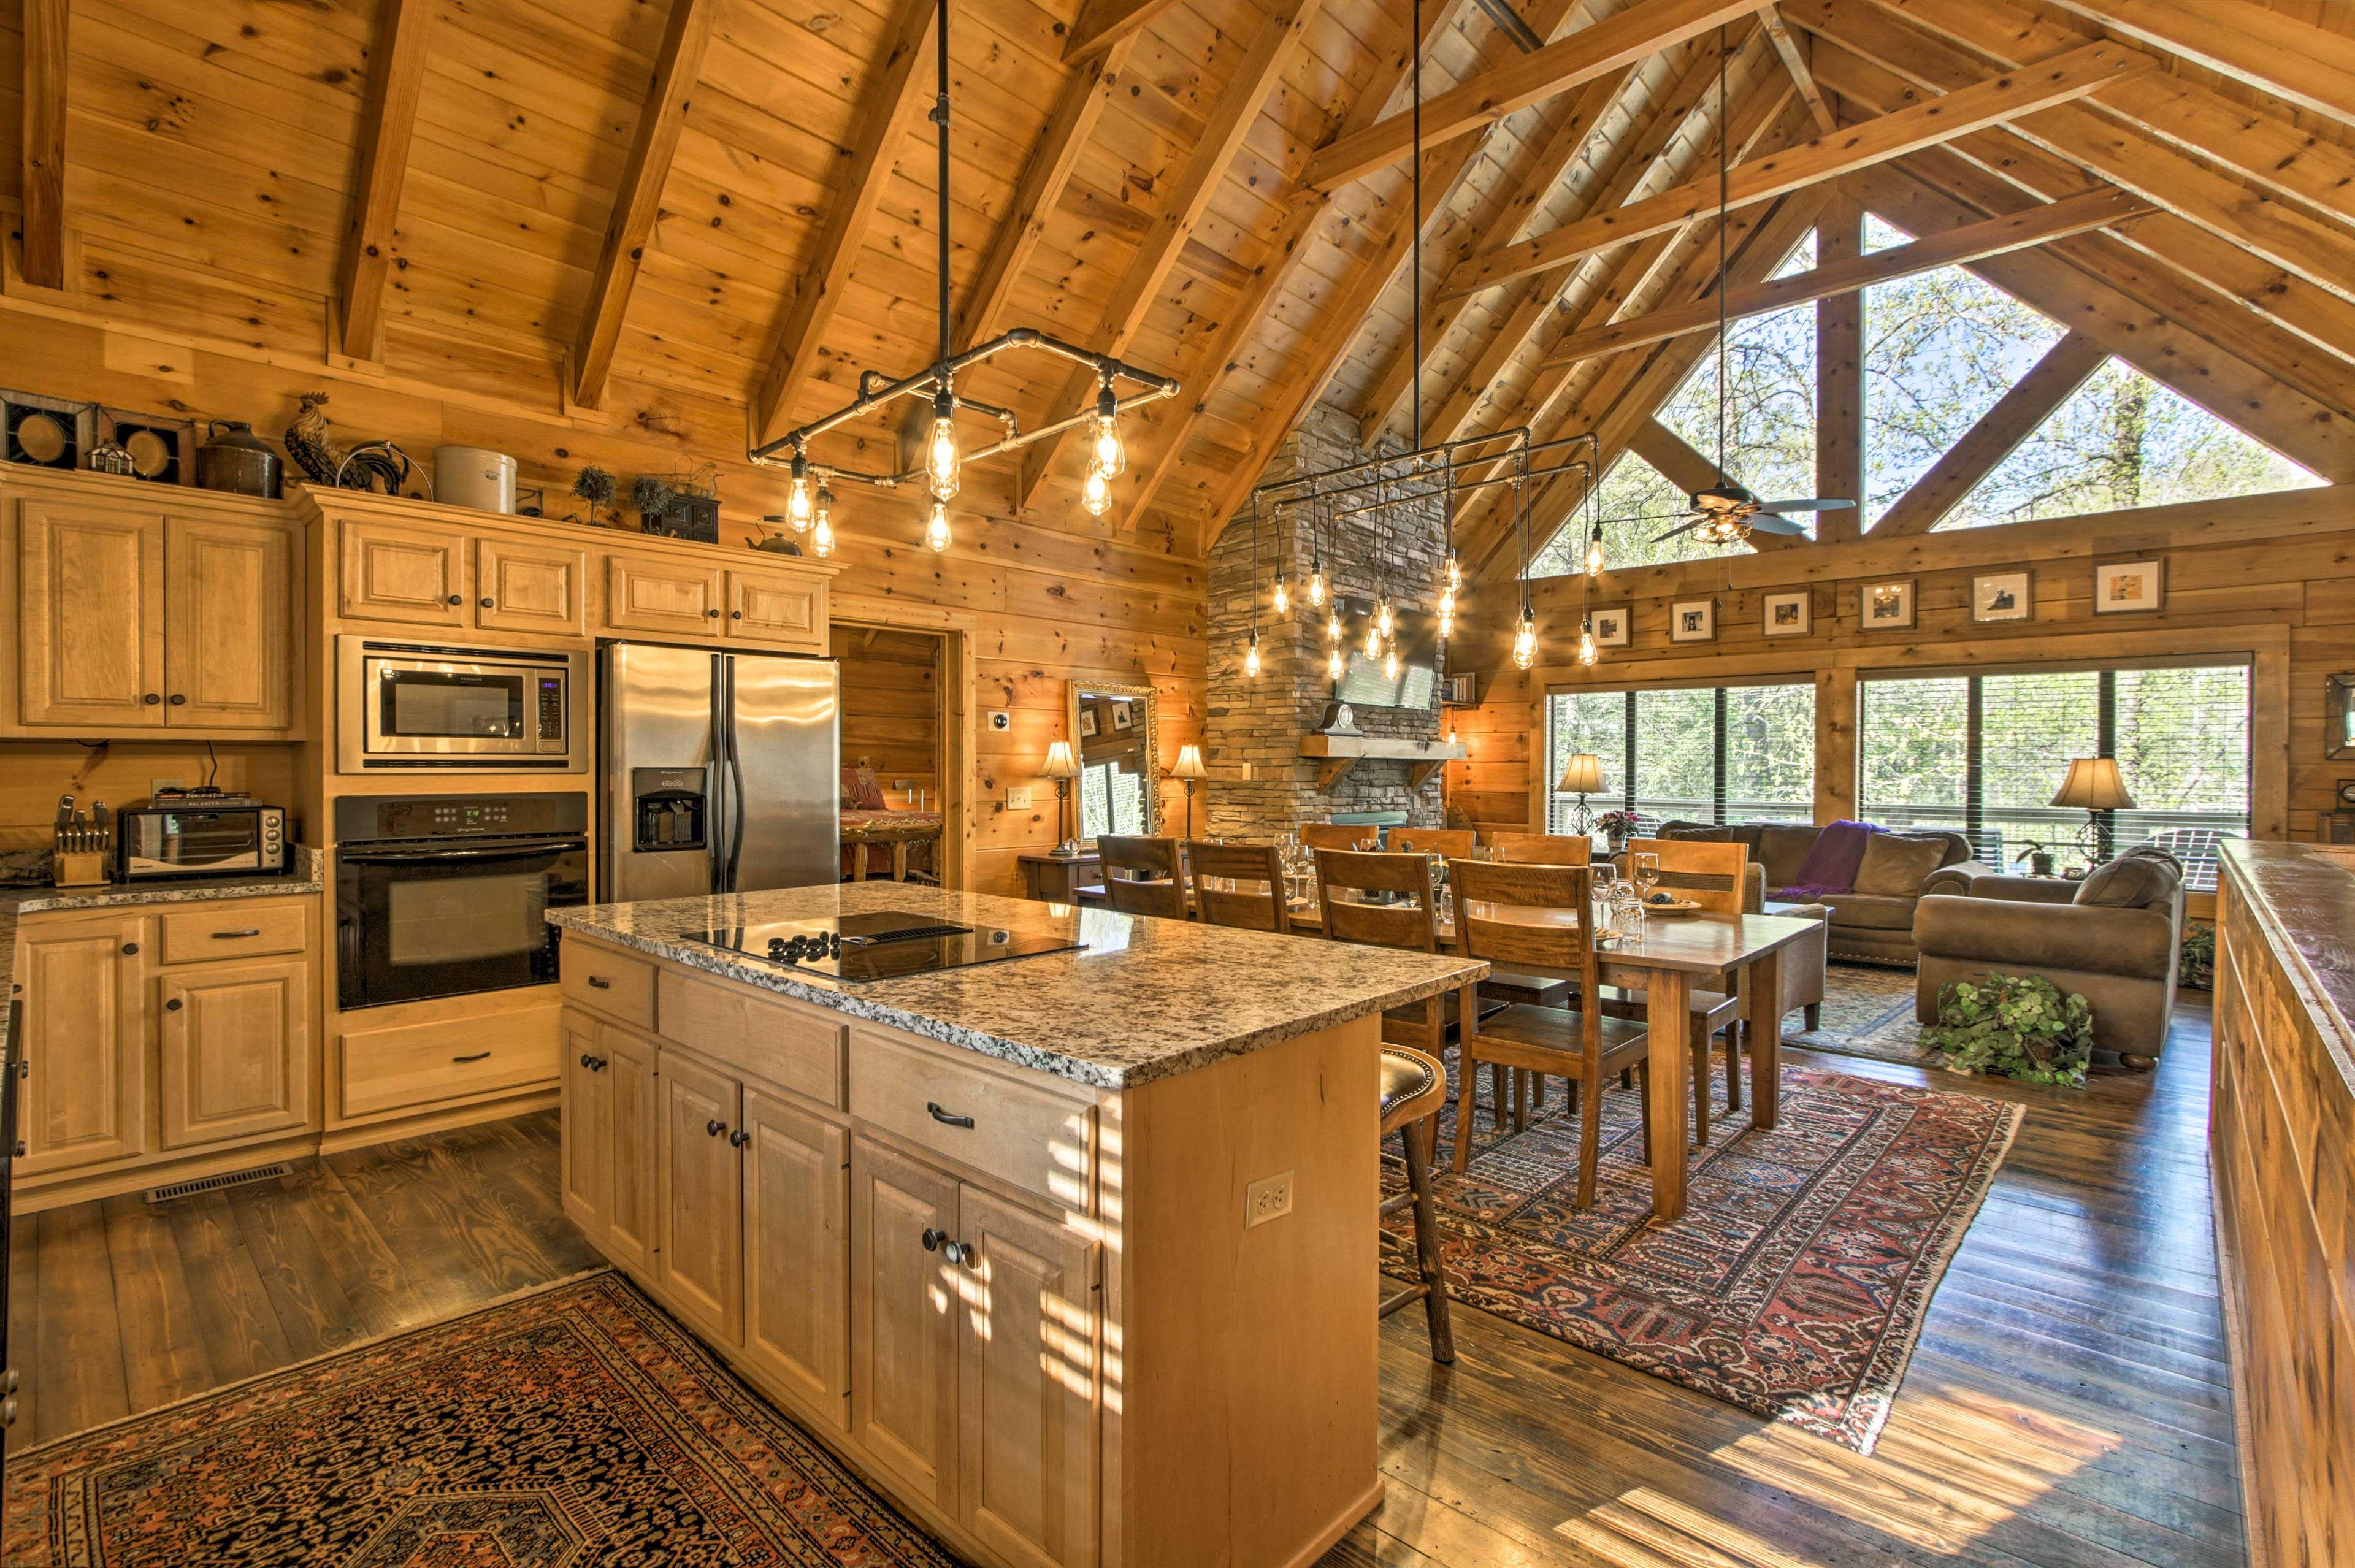 Relaxation awaits at Mountain Medicine, a Tennessee cabin